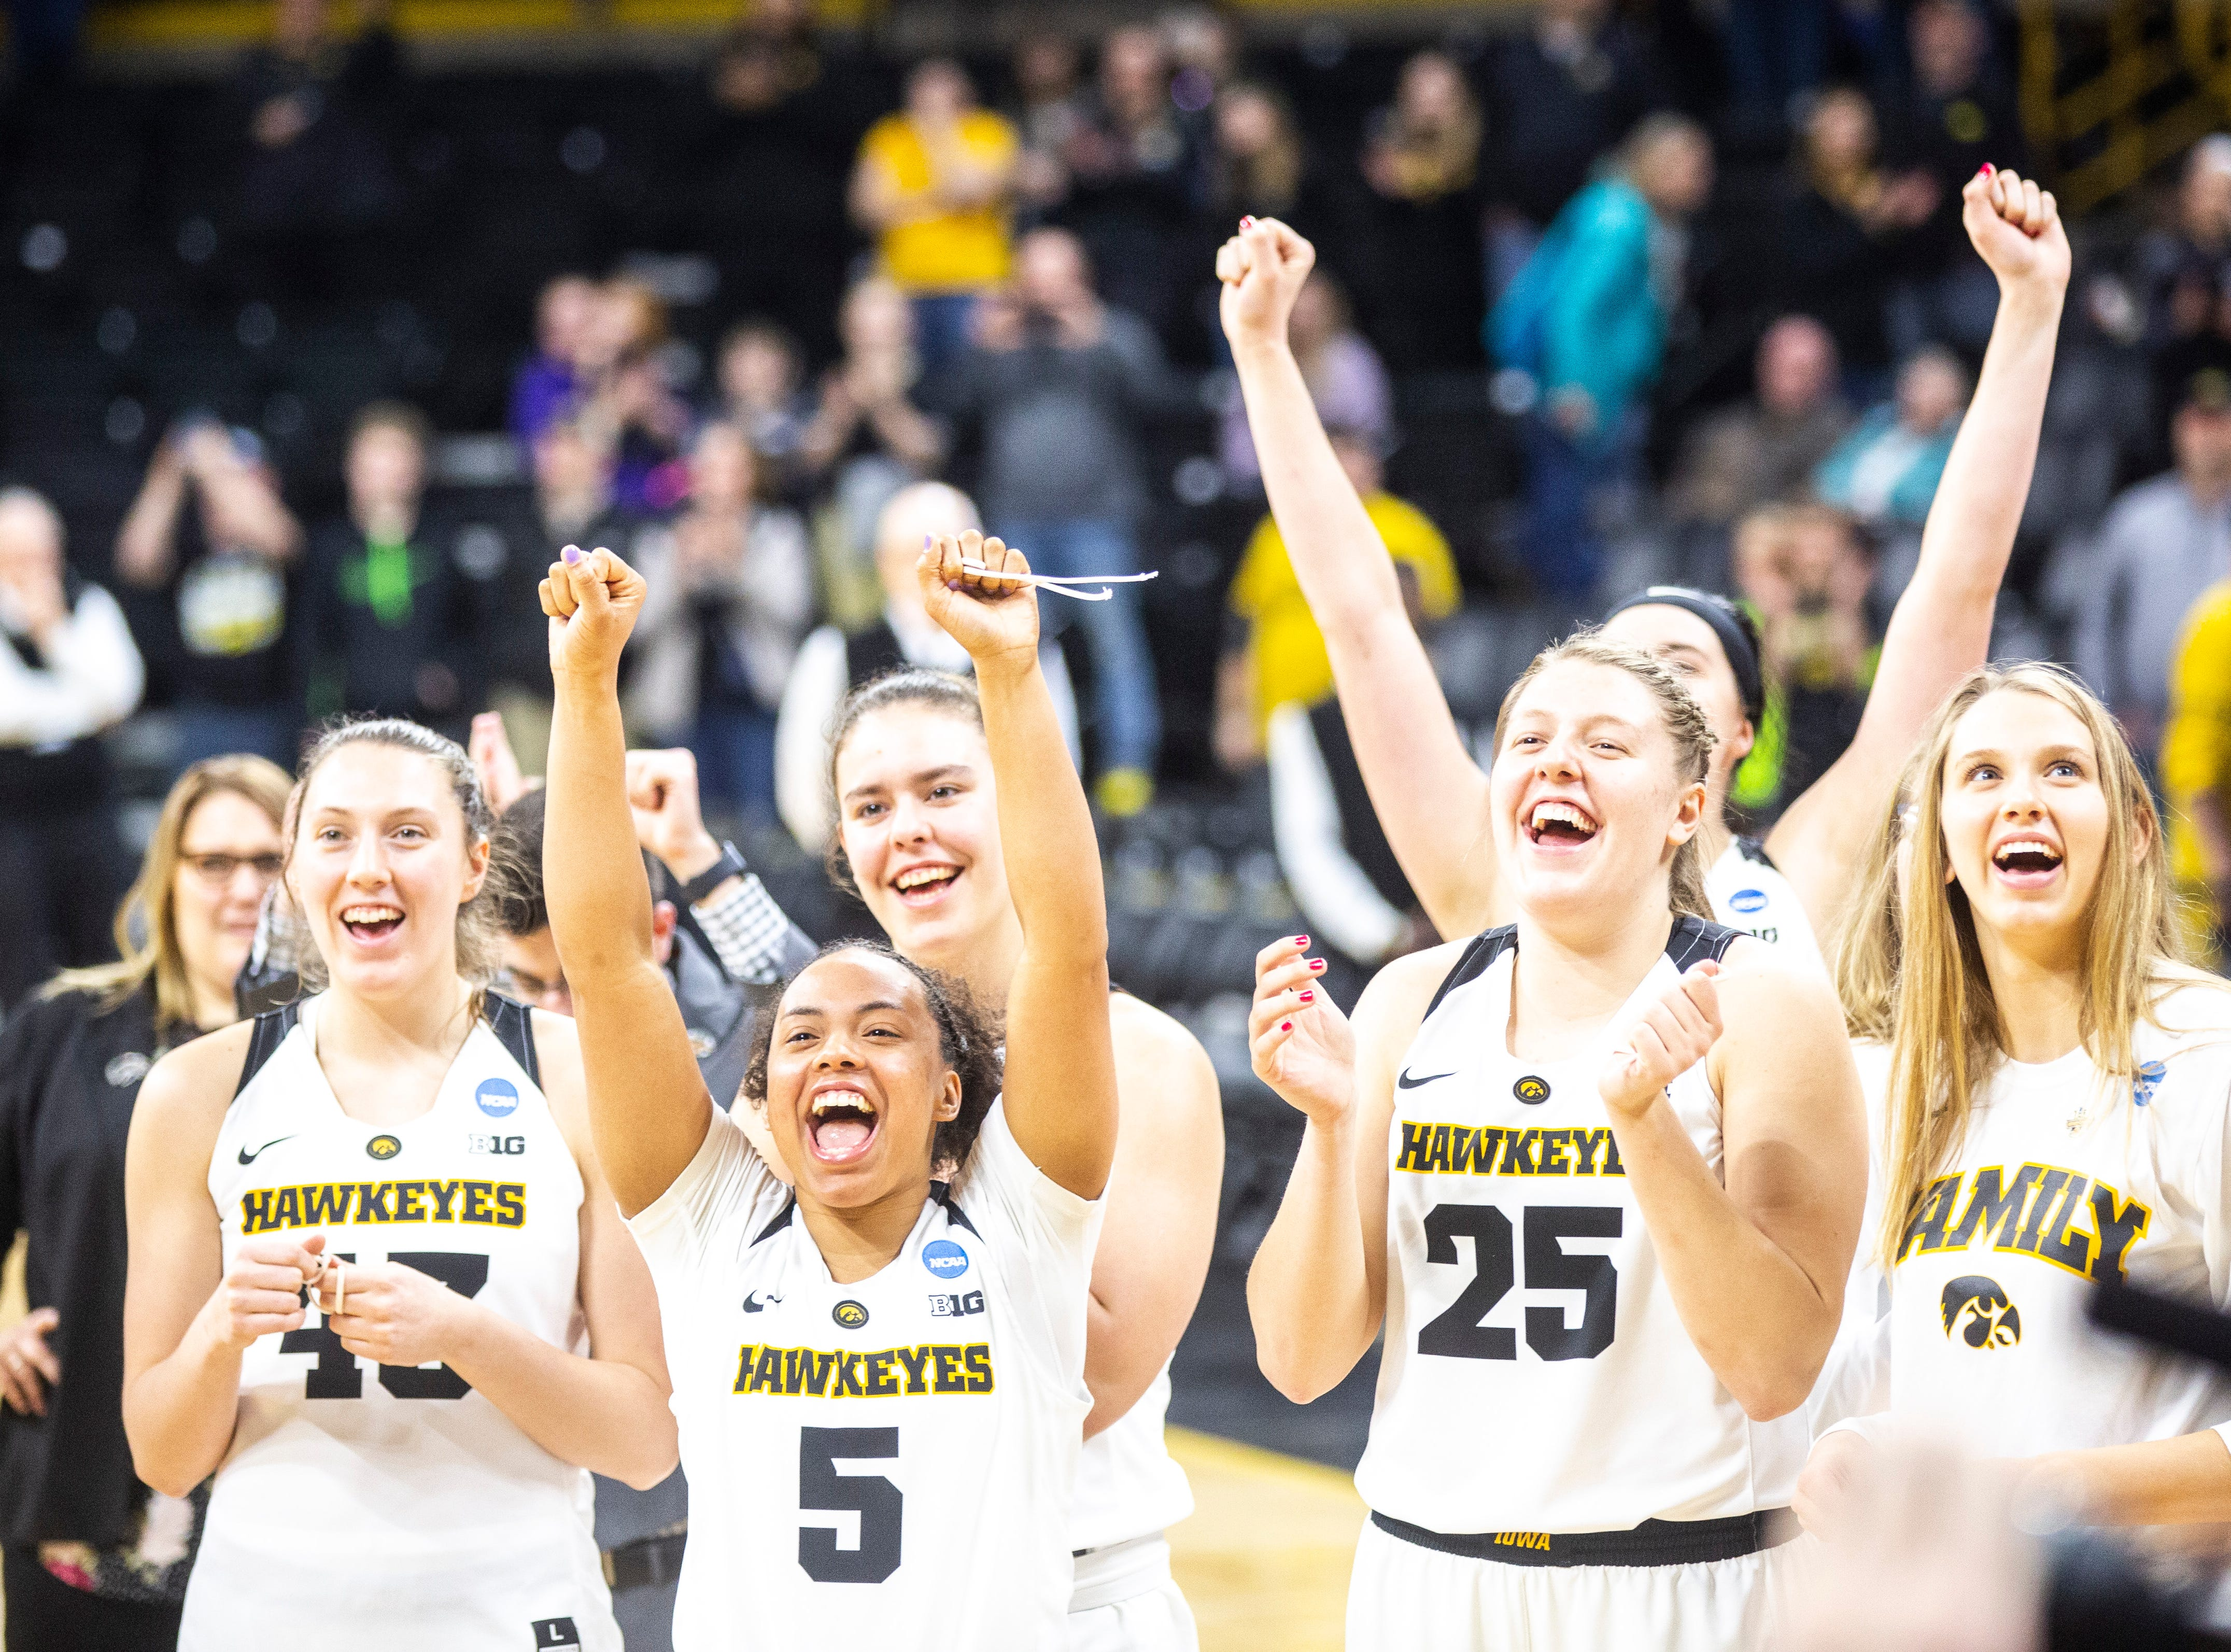 Iowa Hawkeyes cheer while teammates cut down the nets on the court after a NCAA women's basketball tournament second-round game, Sunday, March 24, 2019, at Carver-Hawkeye Arena in Iowa City, Iowa.